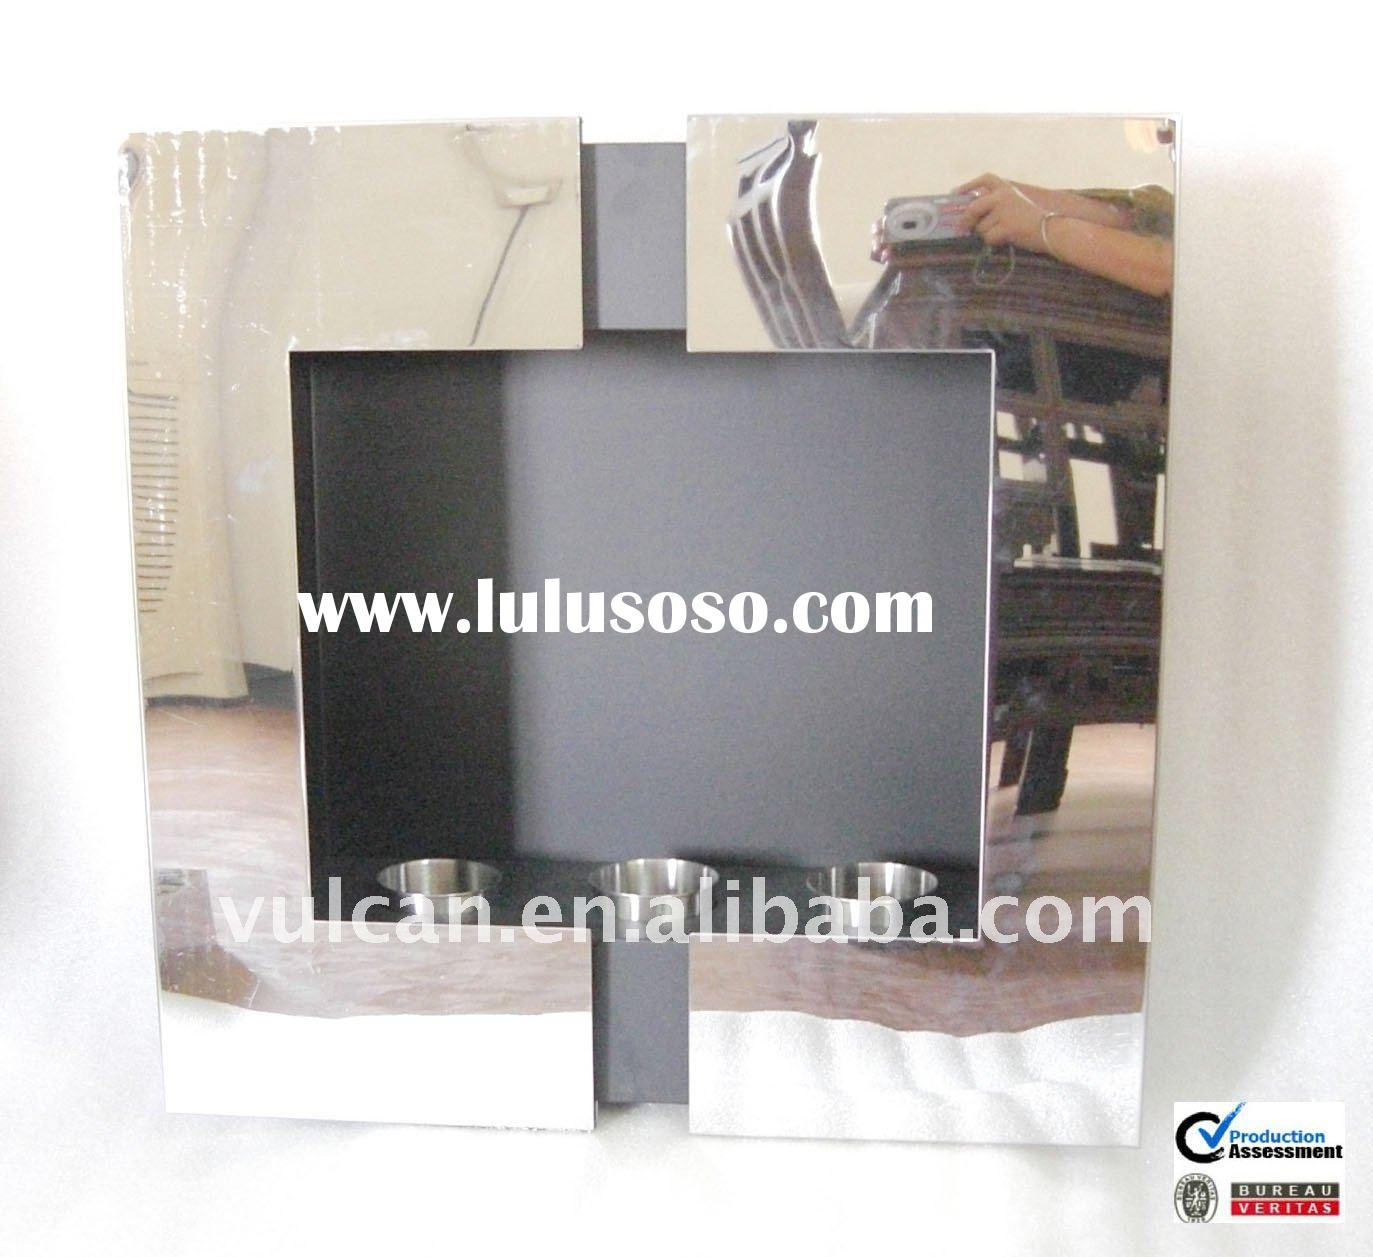 Stainless steel Wall mounted ethanol fireplace